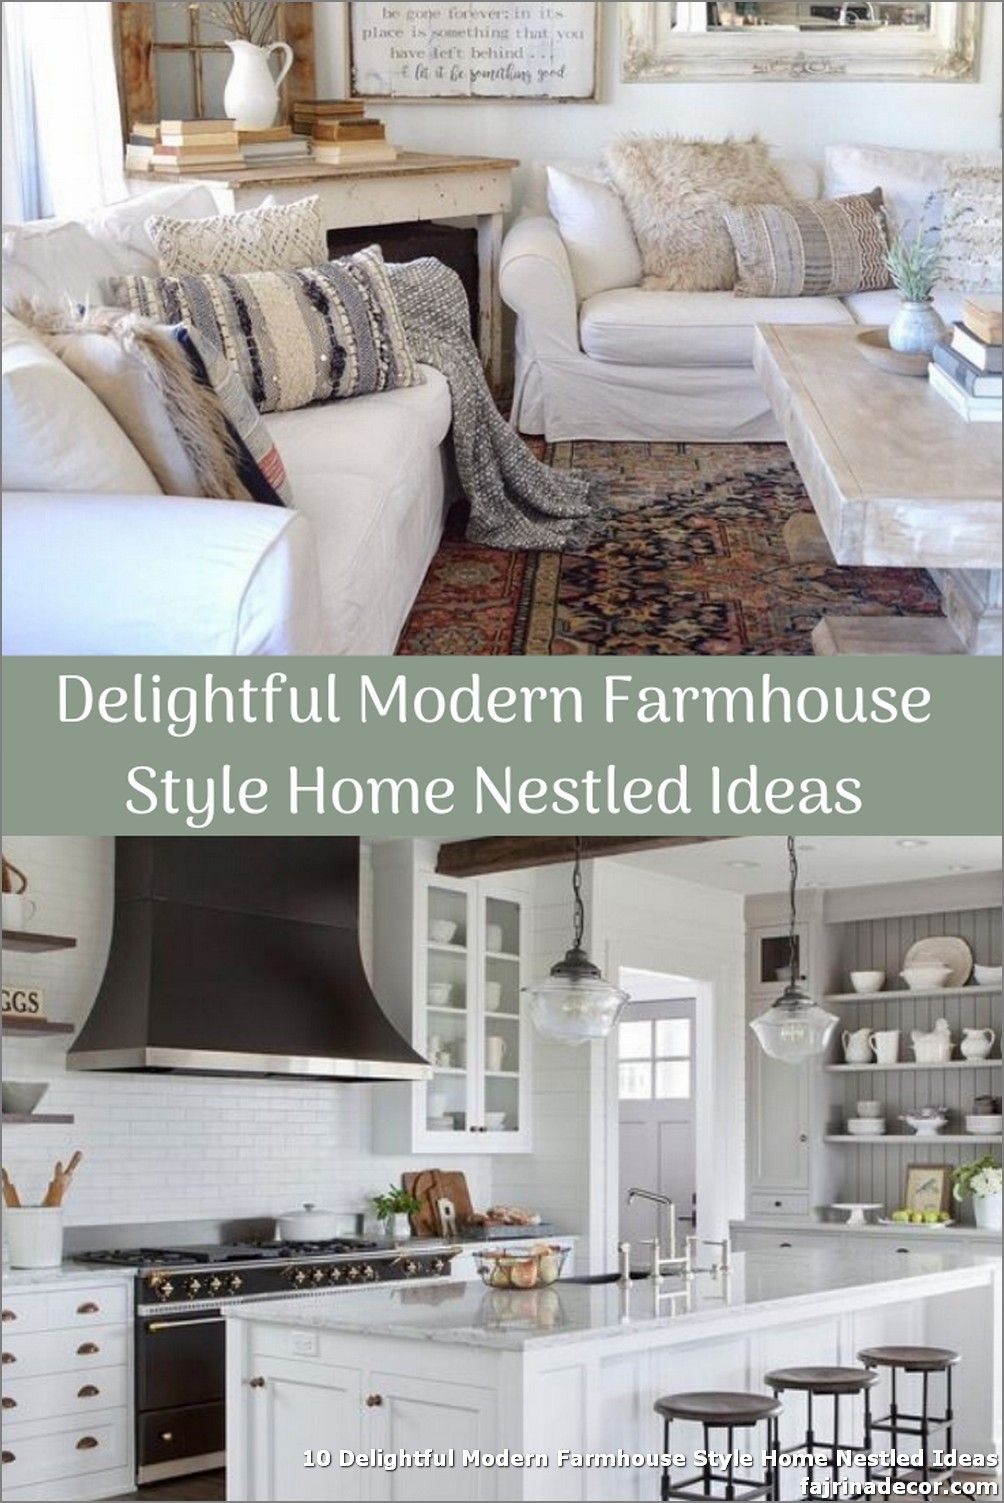 10 Delightful Modern Farmhouse Style Home Nestled Ideas The Lavatory Is Small I M Making An Attempt To In 2020 Farmhouse Style House Farmhouse Style Modern Farmhouse